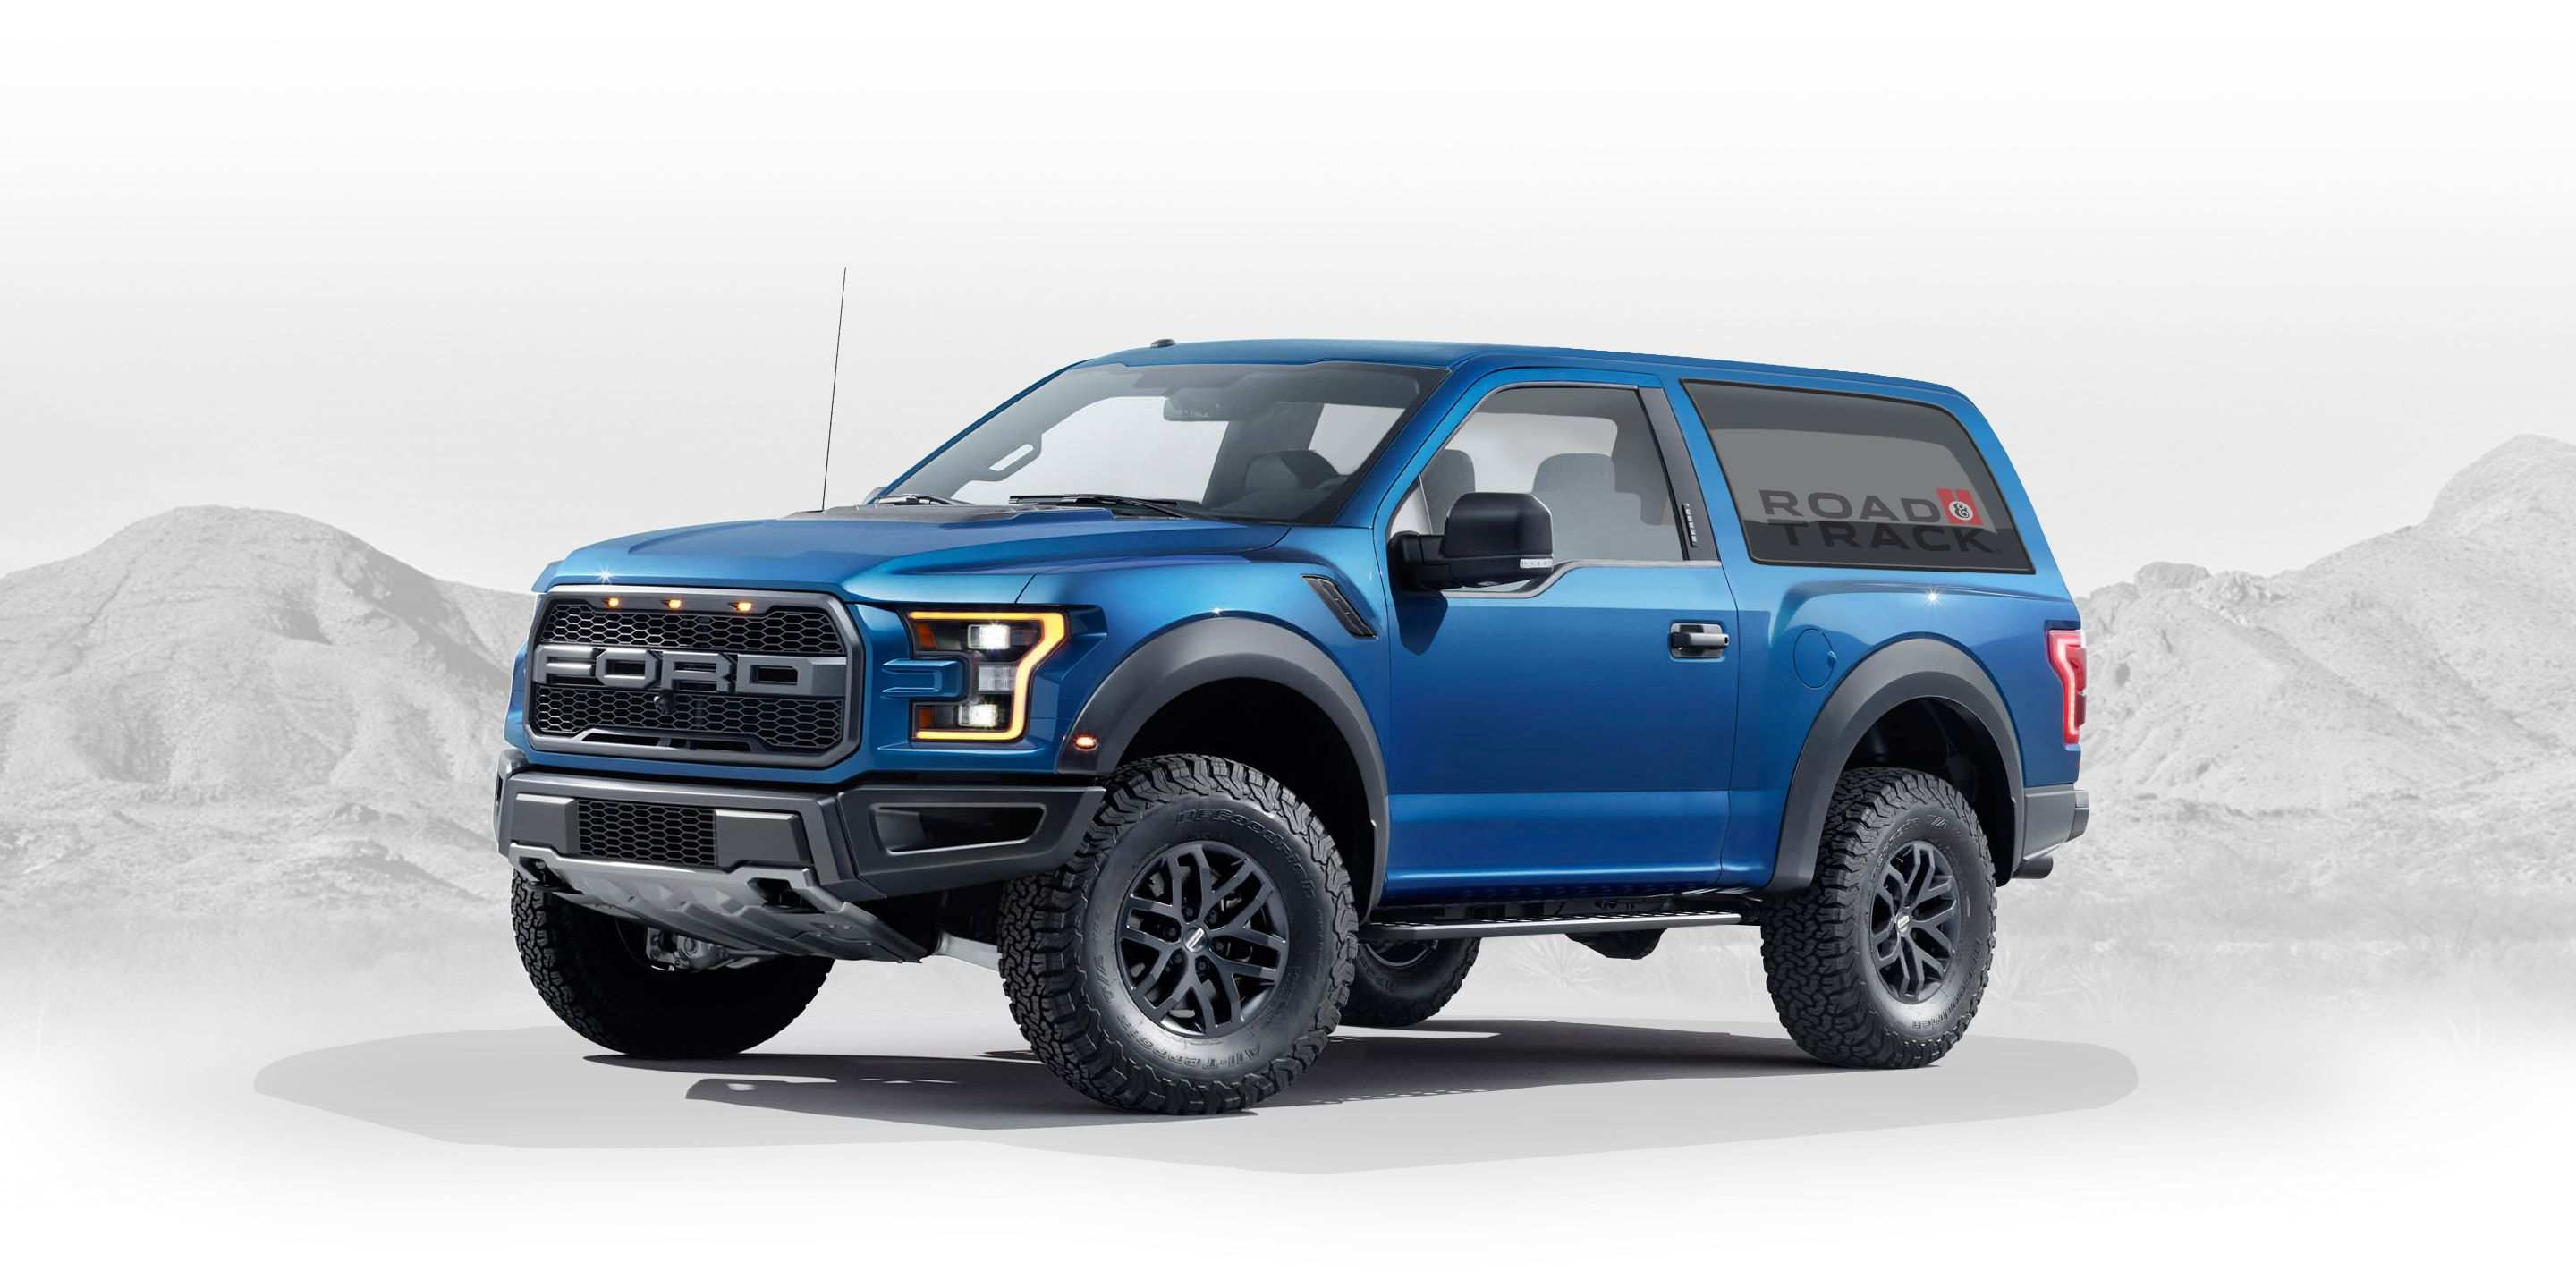 58 All New 2020 Ford Bronco Design Pictures with 2020 Ford Bronco Design